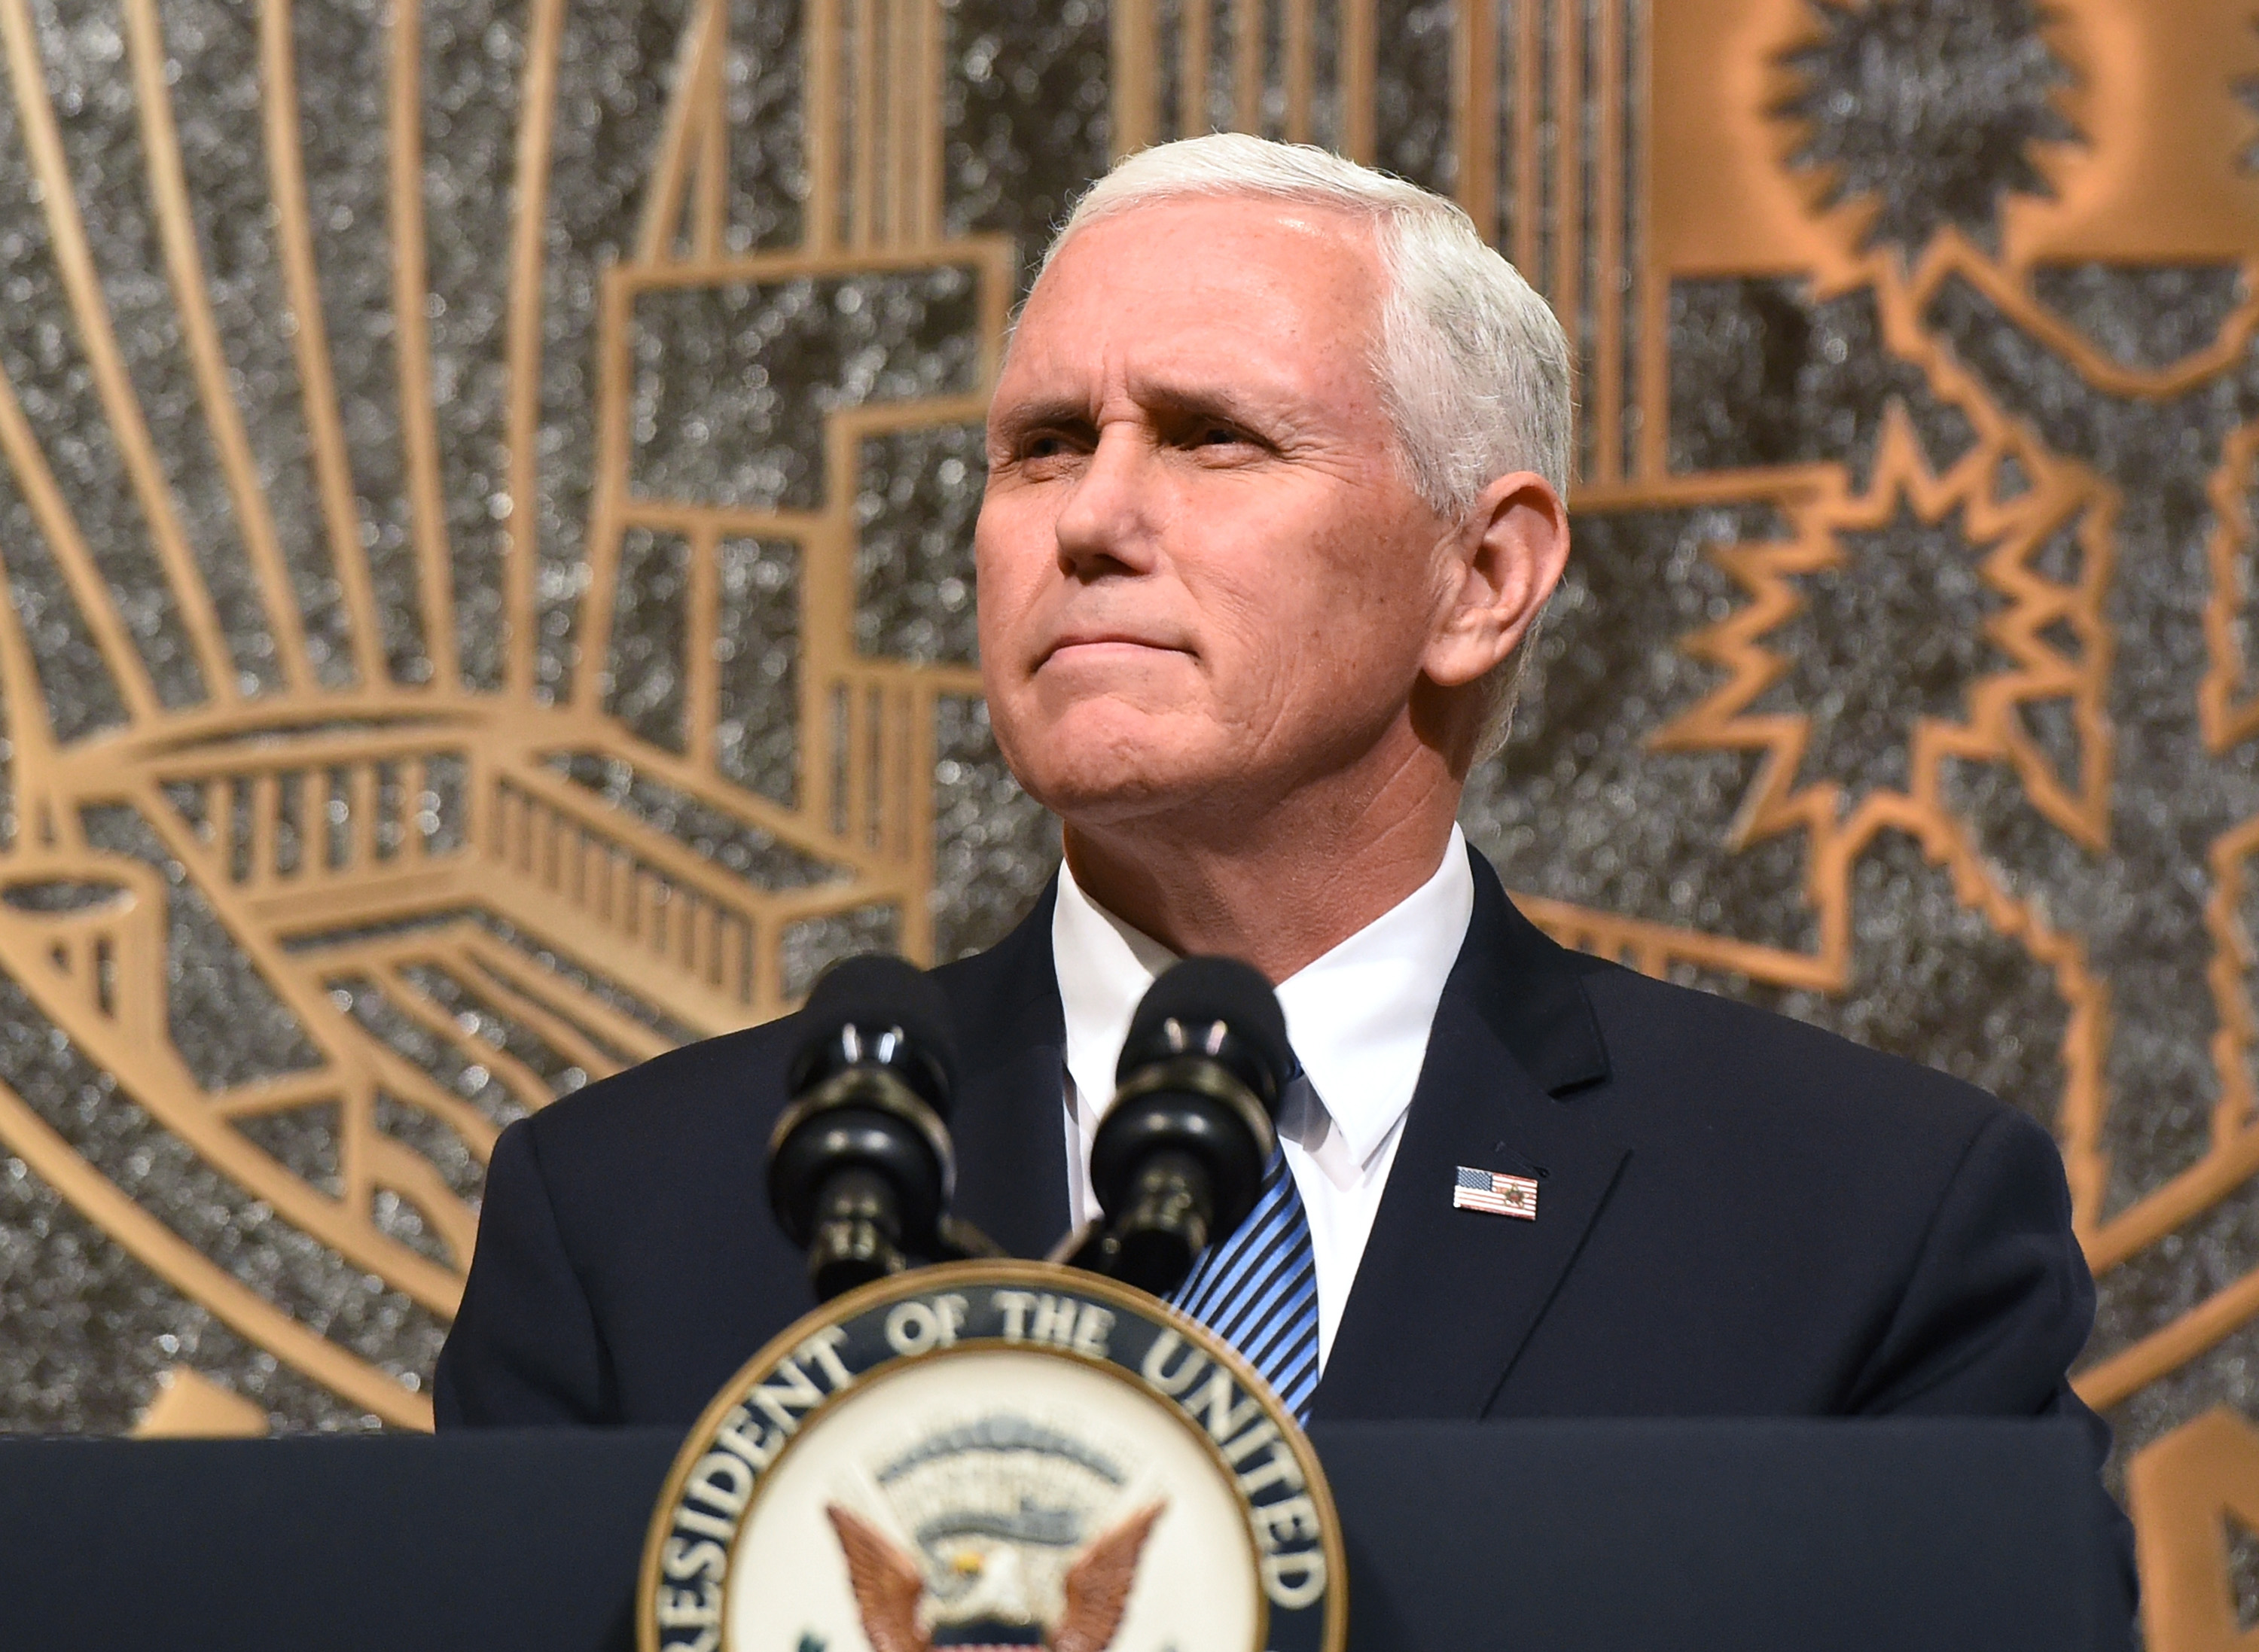 Vice President Pence Leaves Colts Game Early After Players Kneel for Anthem